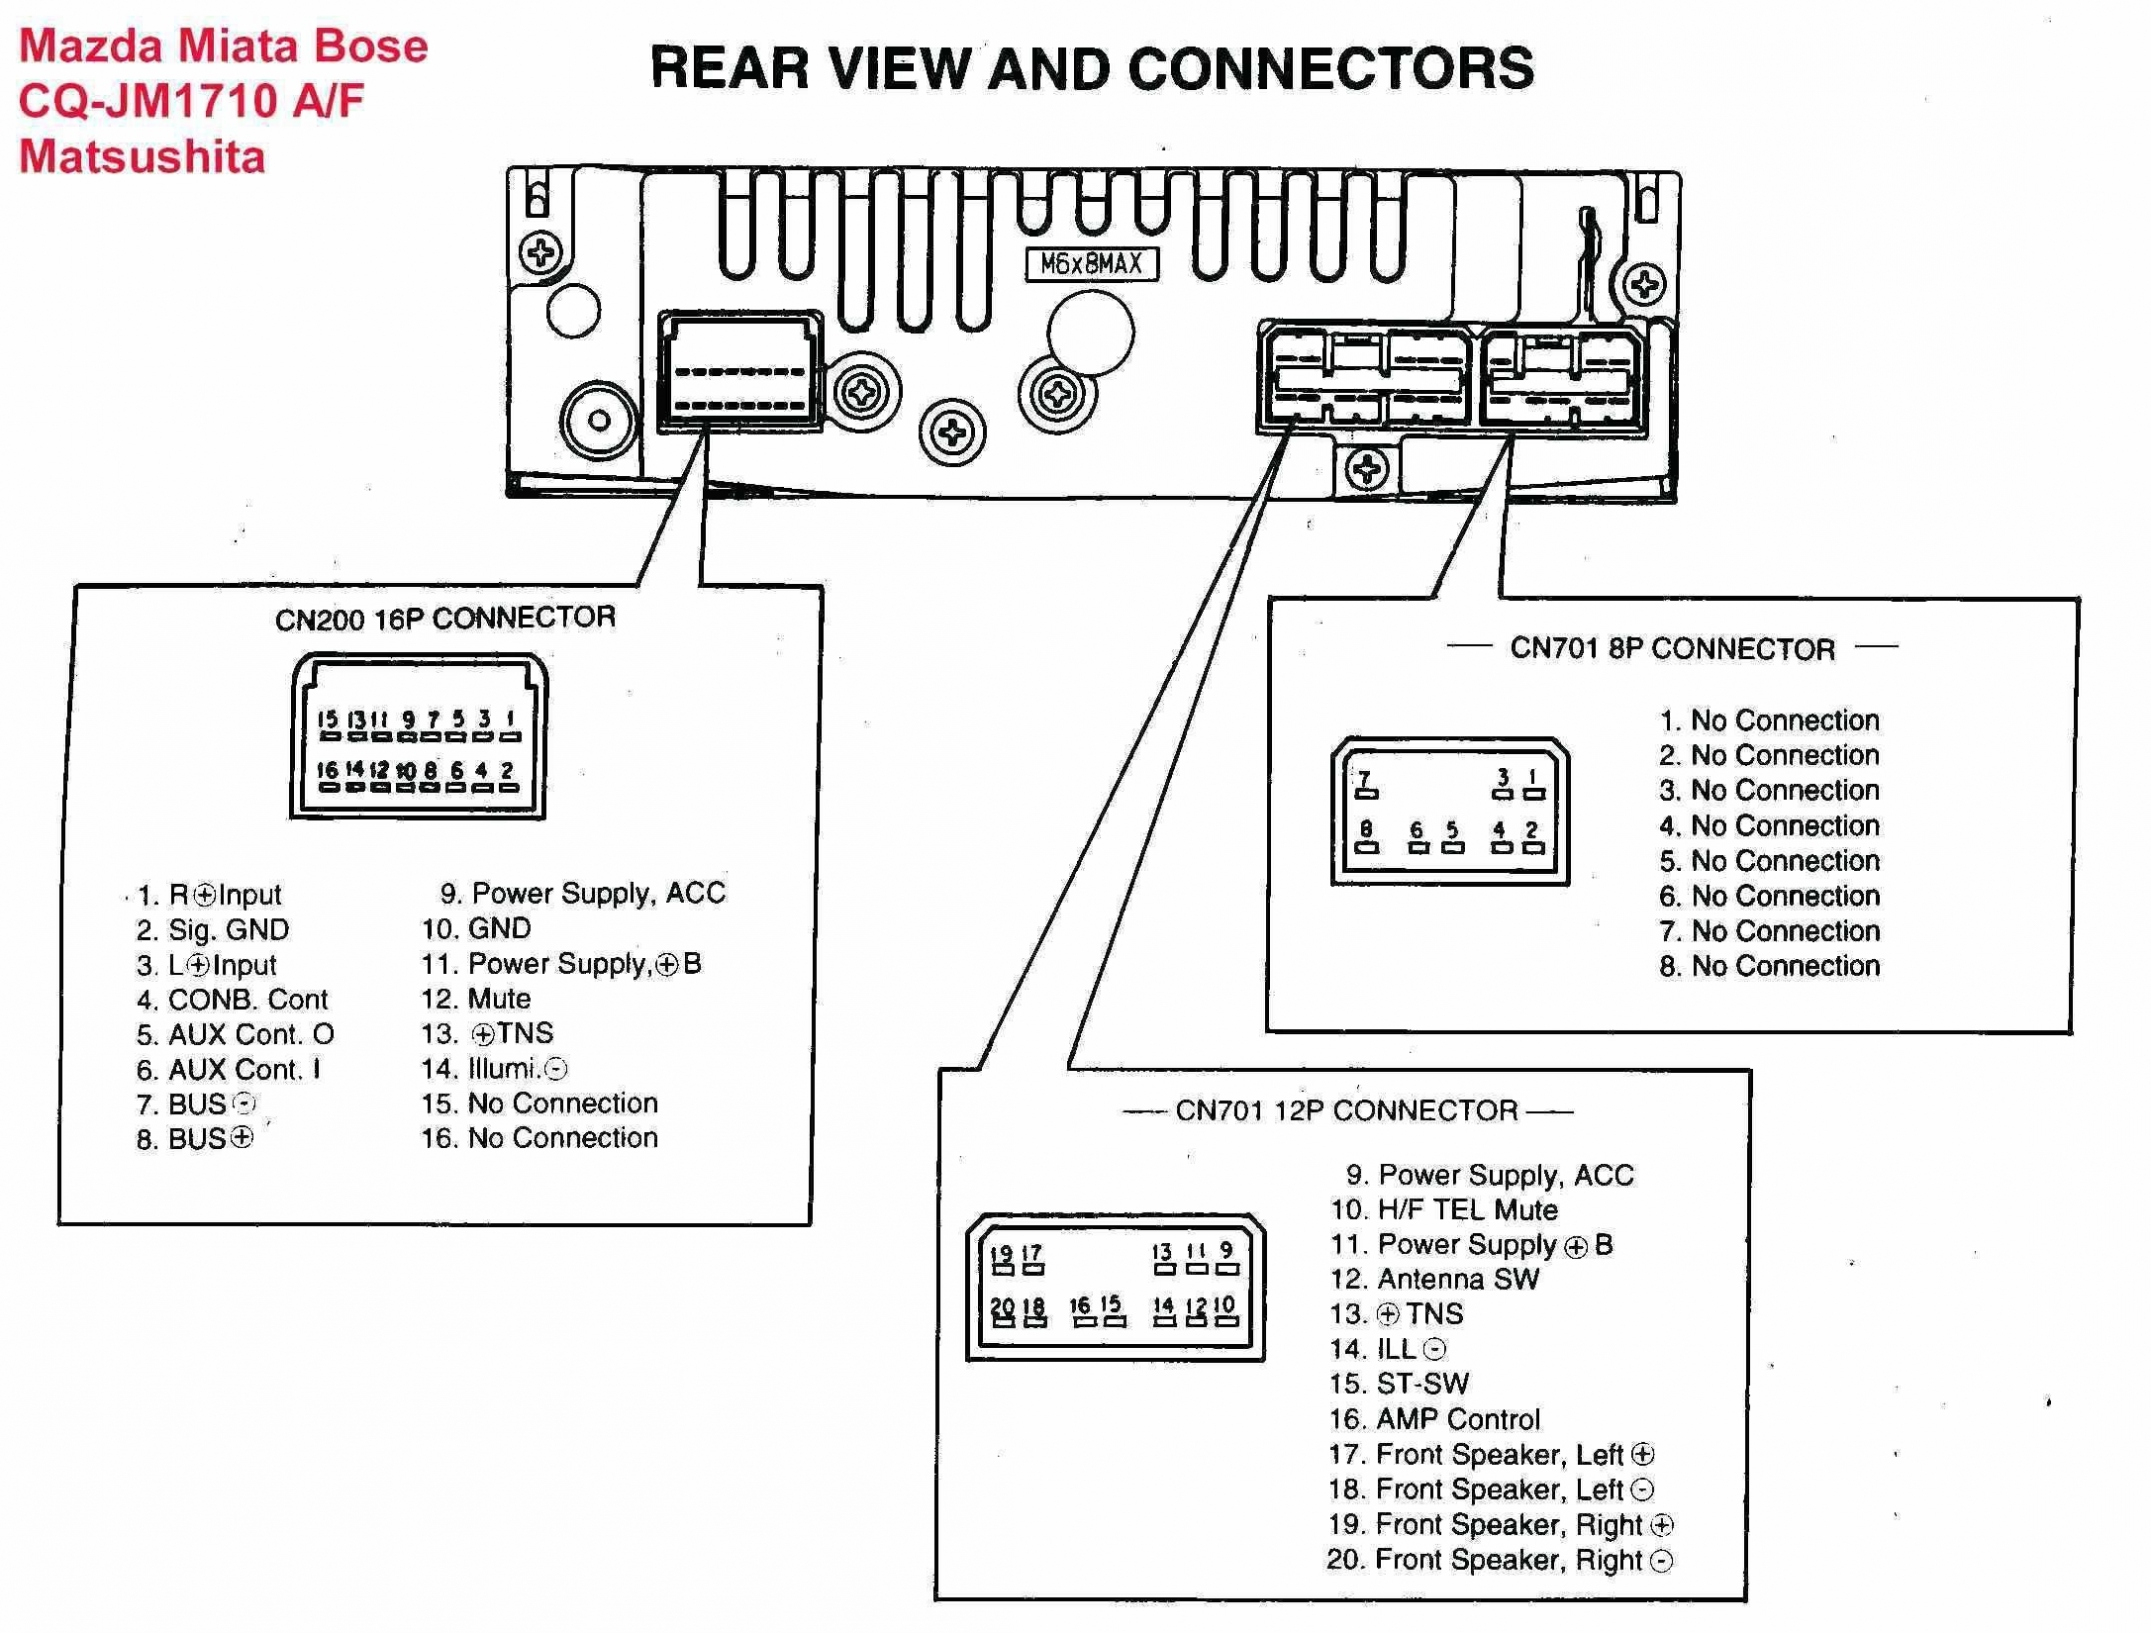 Coil Split Wiring Diagram New Pioneer Head Unit Wiring Diagram - Pioneer Head Unit Wiring Diagram